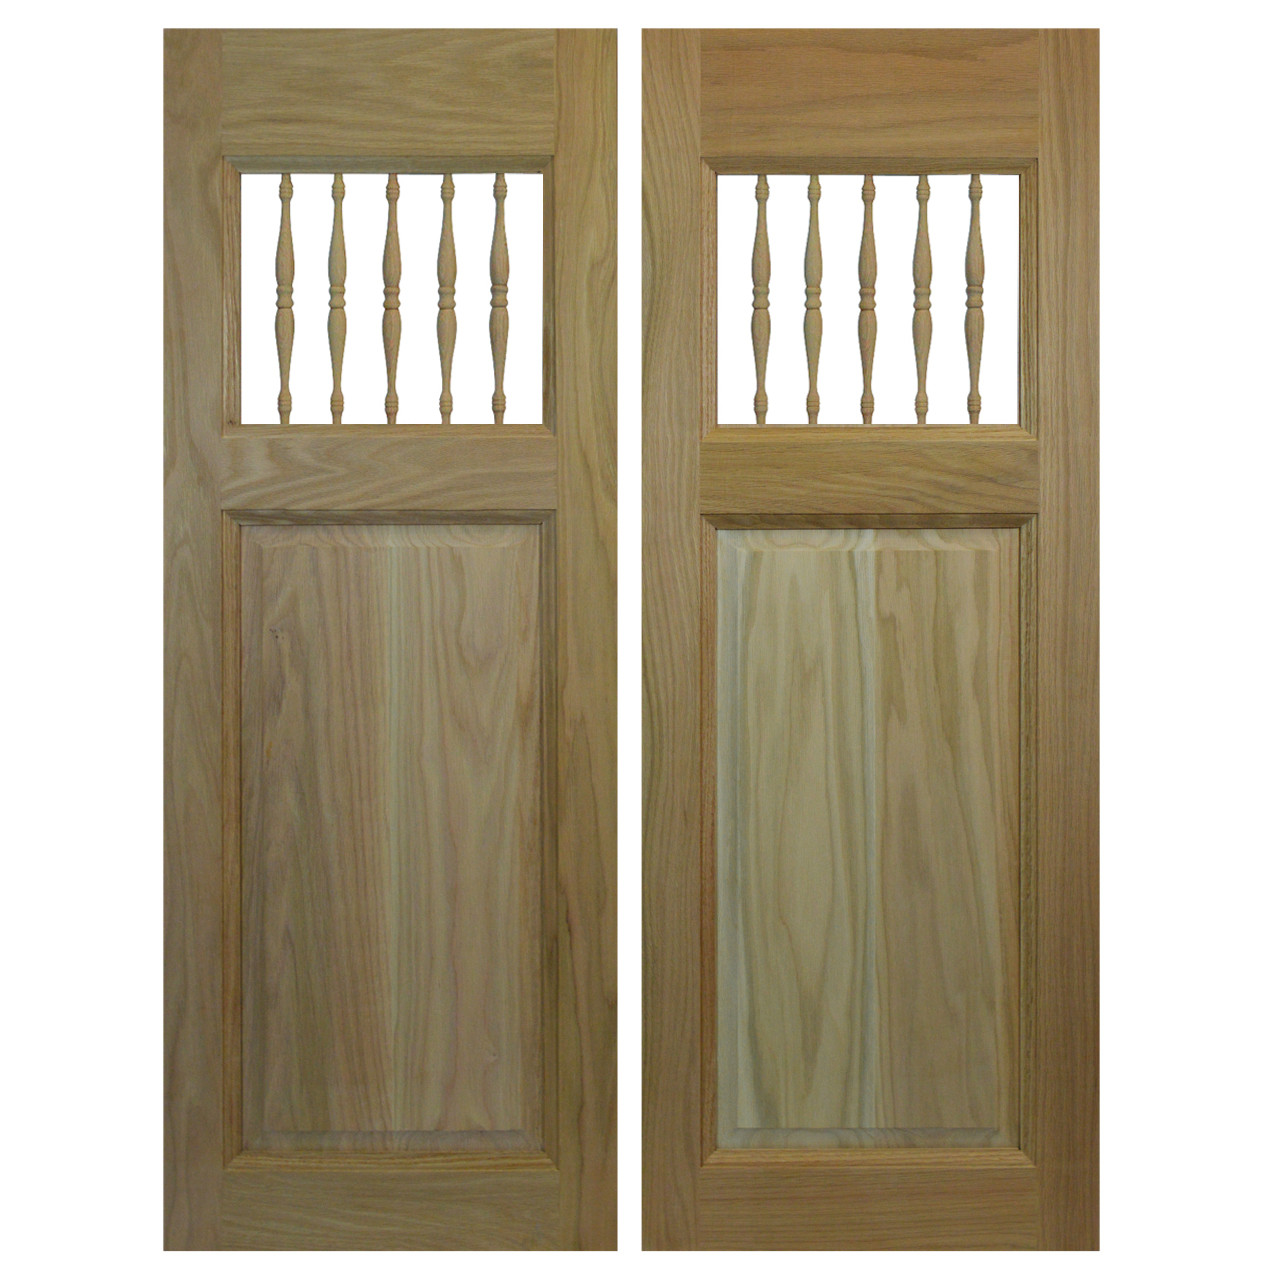 Commercial swinging oak cafe saloon doors with spindles